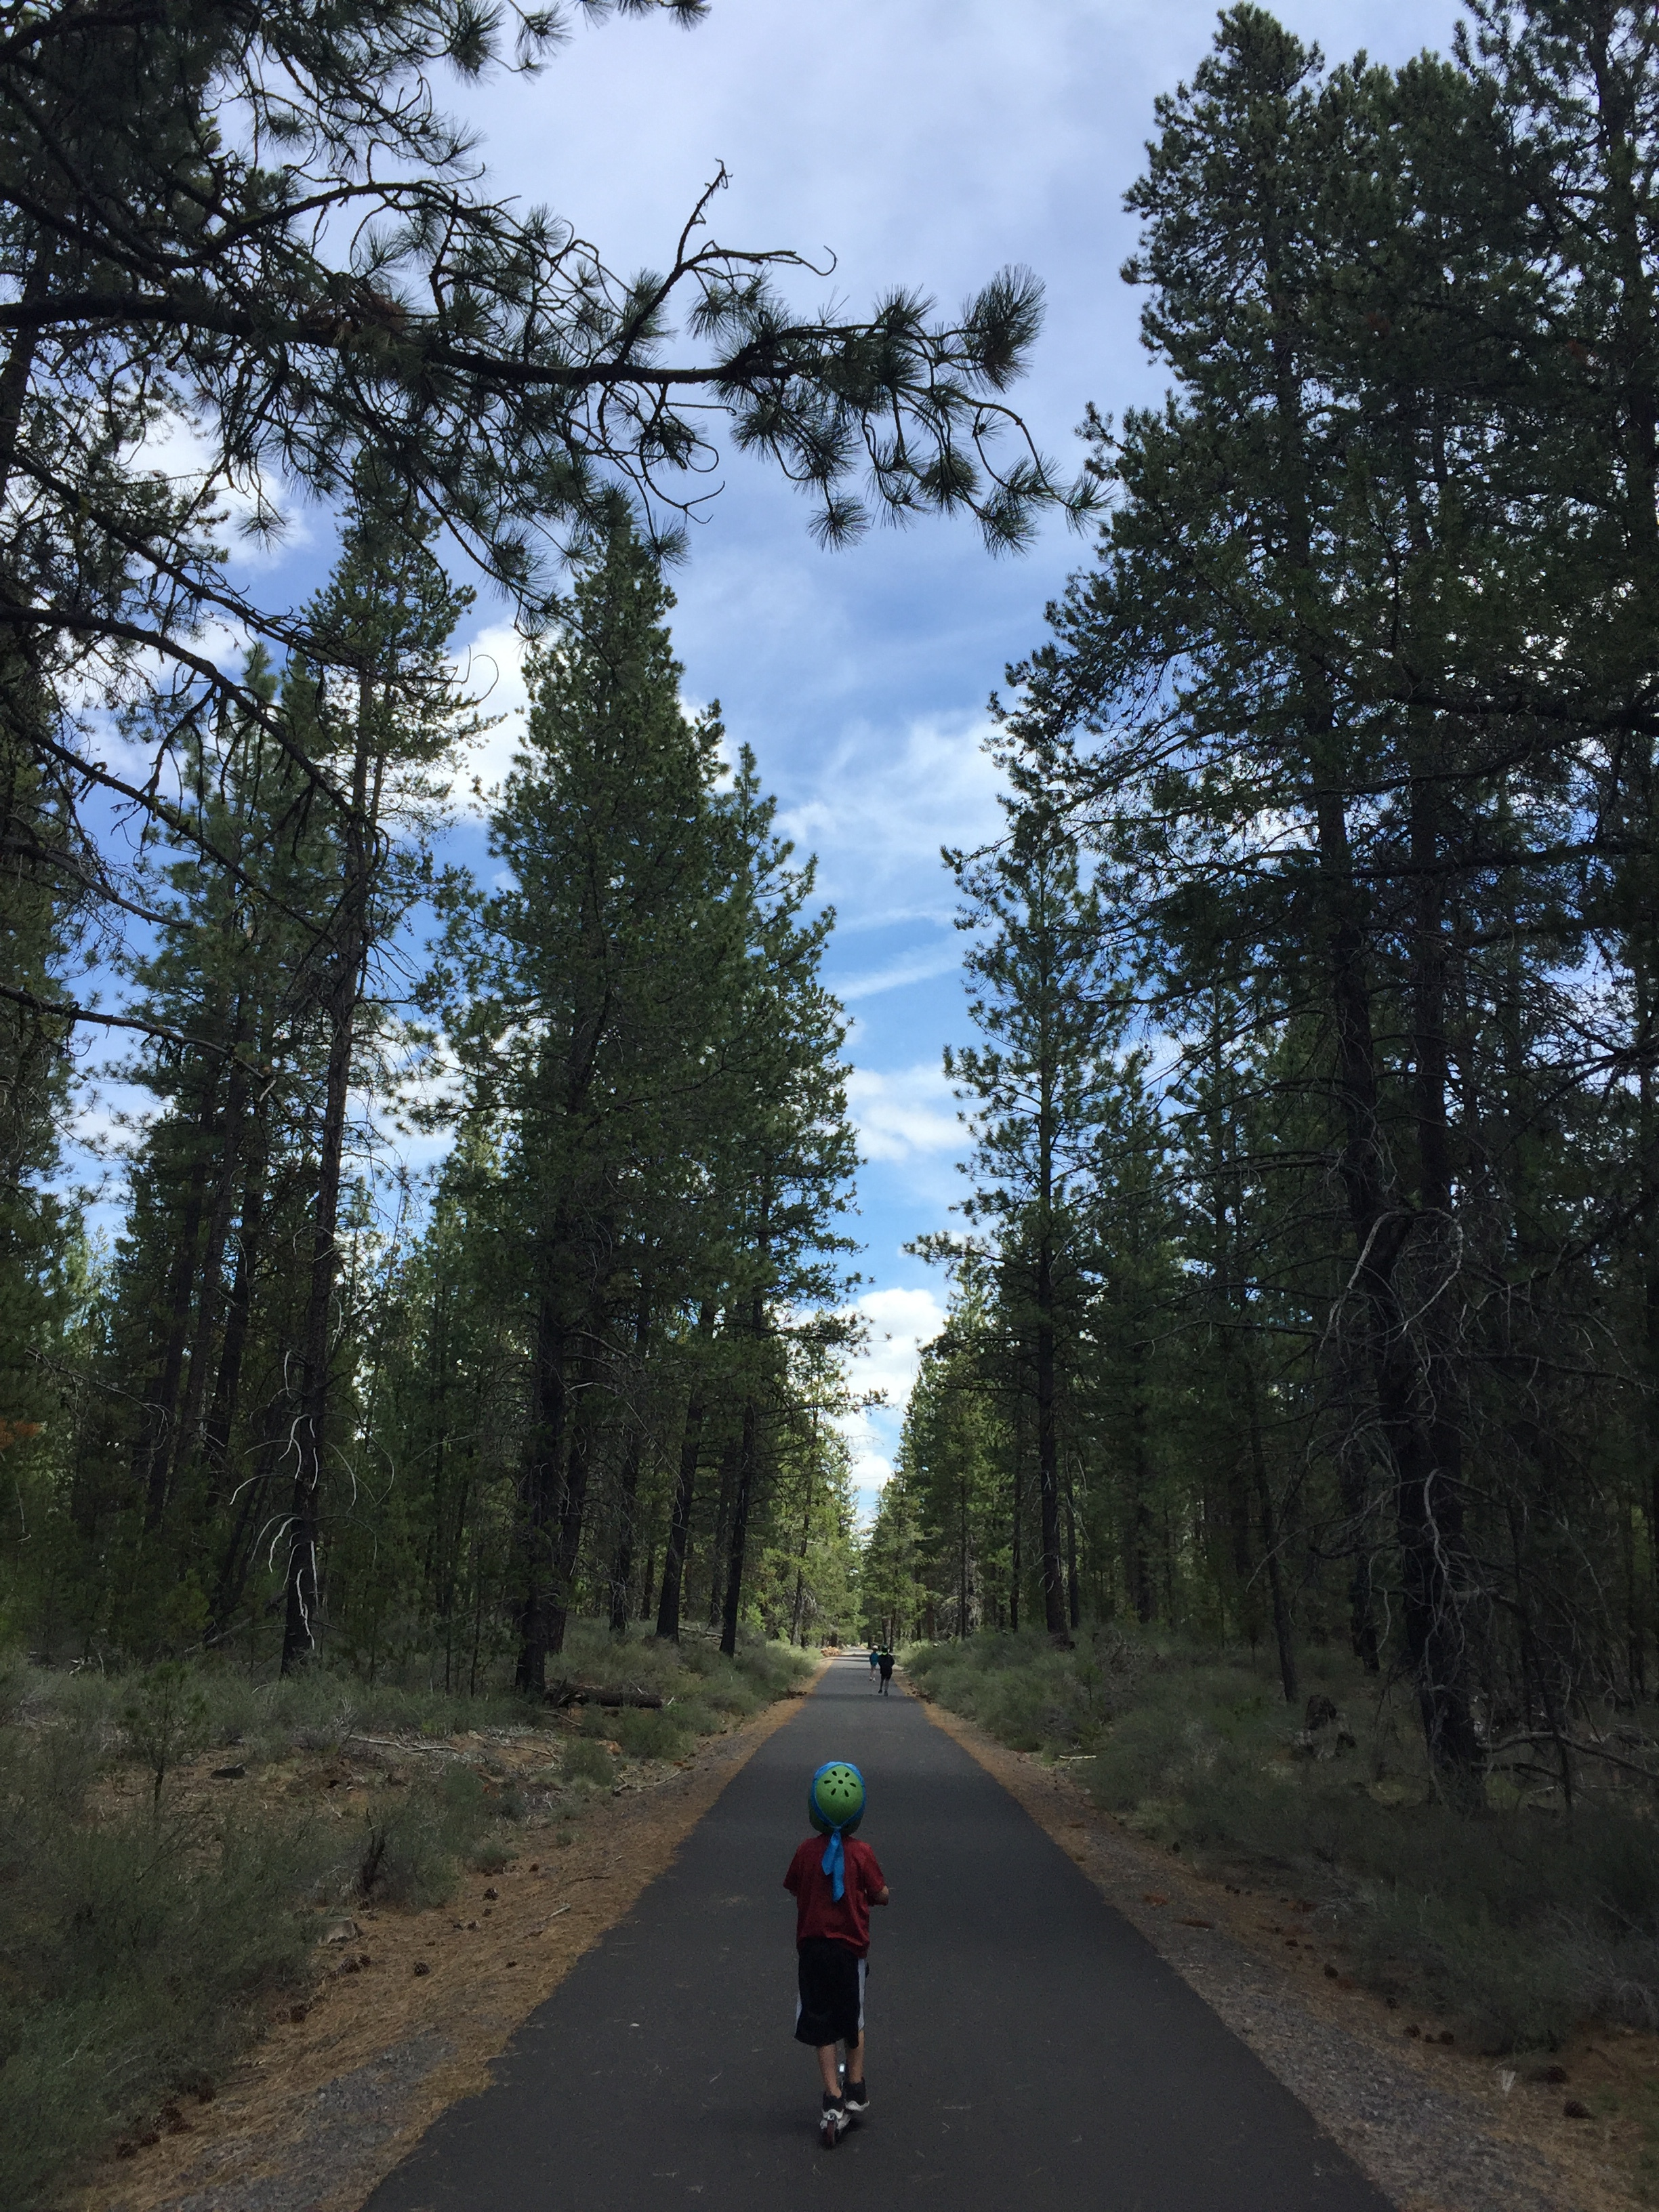 Sun Lava Trail, great for kids on wheels and strollers